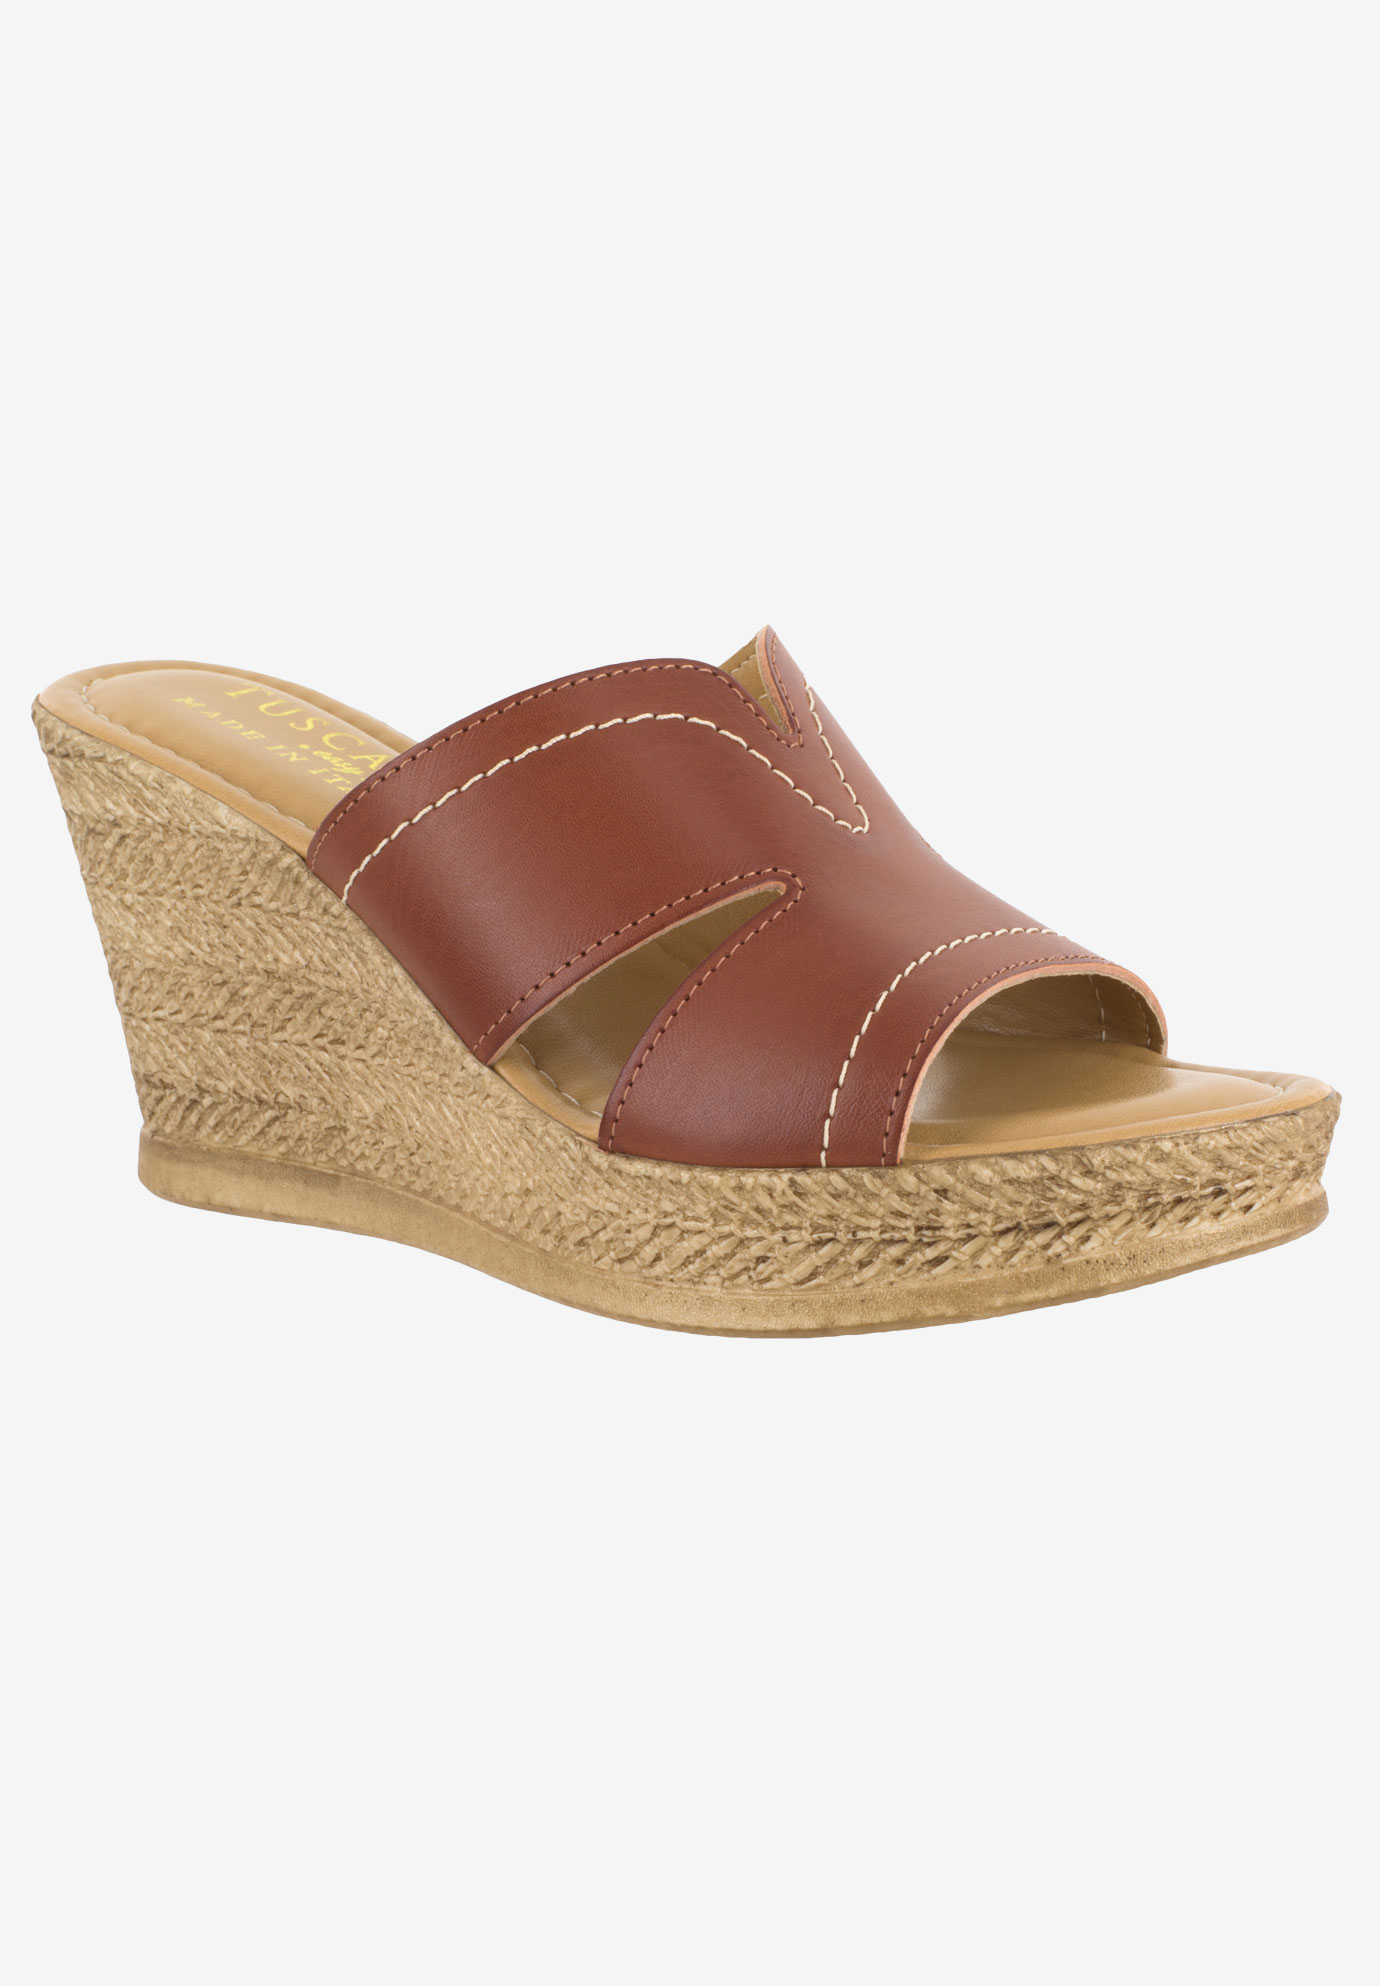 Marsala Wedge ,